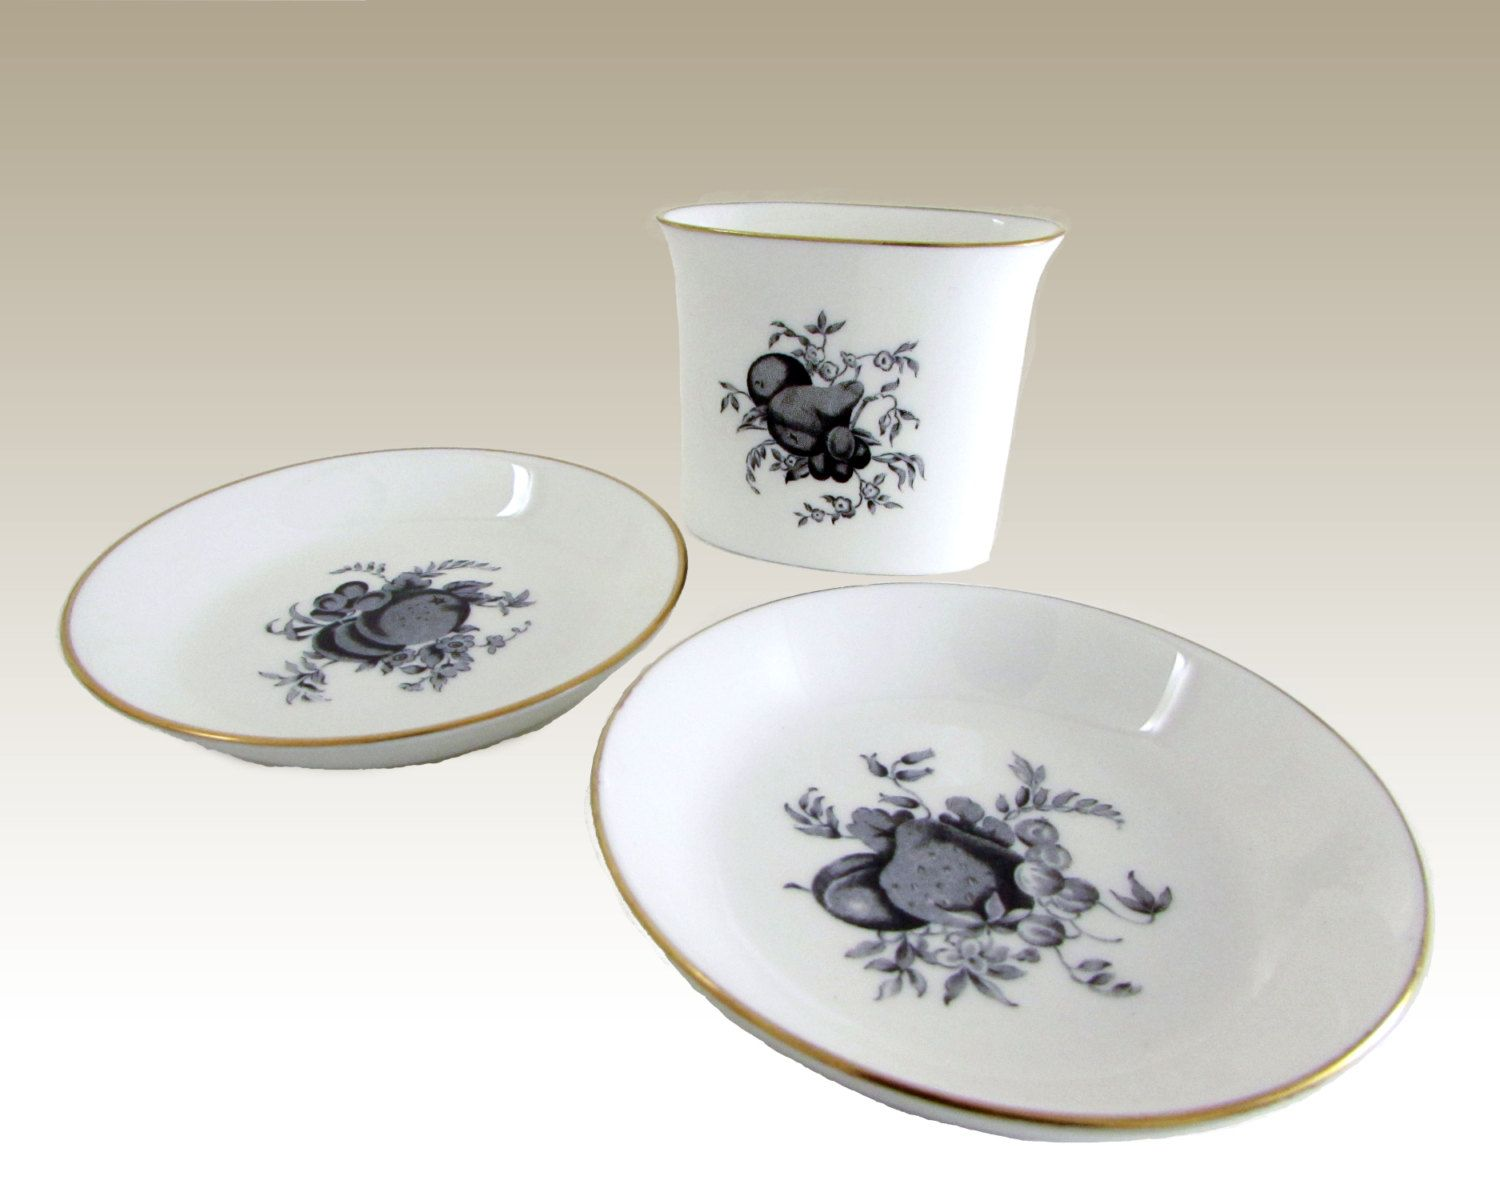 Royal Worcester Delecta in Black Cocktail Cigarette Holder & Ashtray Smoking Set Fine Bone China Circa 1961 Toothpick Holder Coasters by WhatnotGems on Etsy